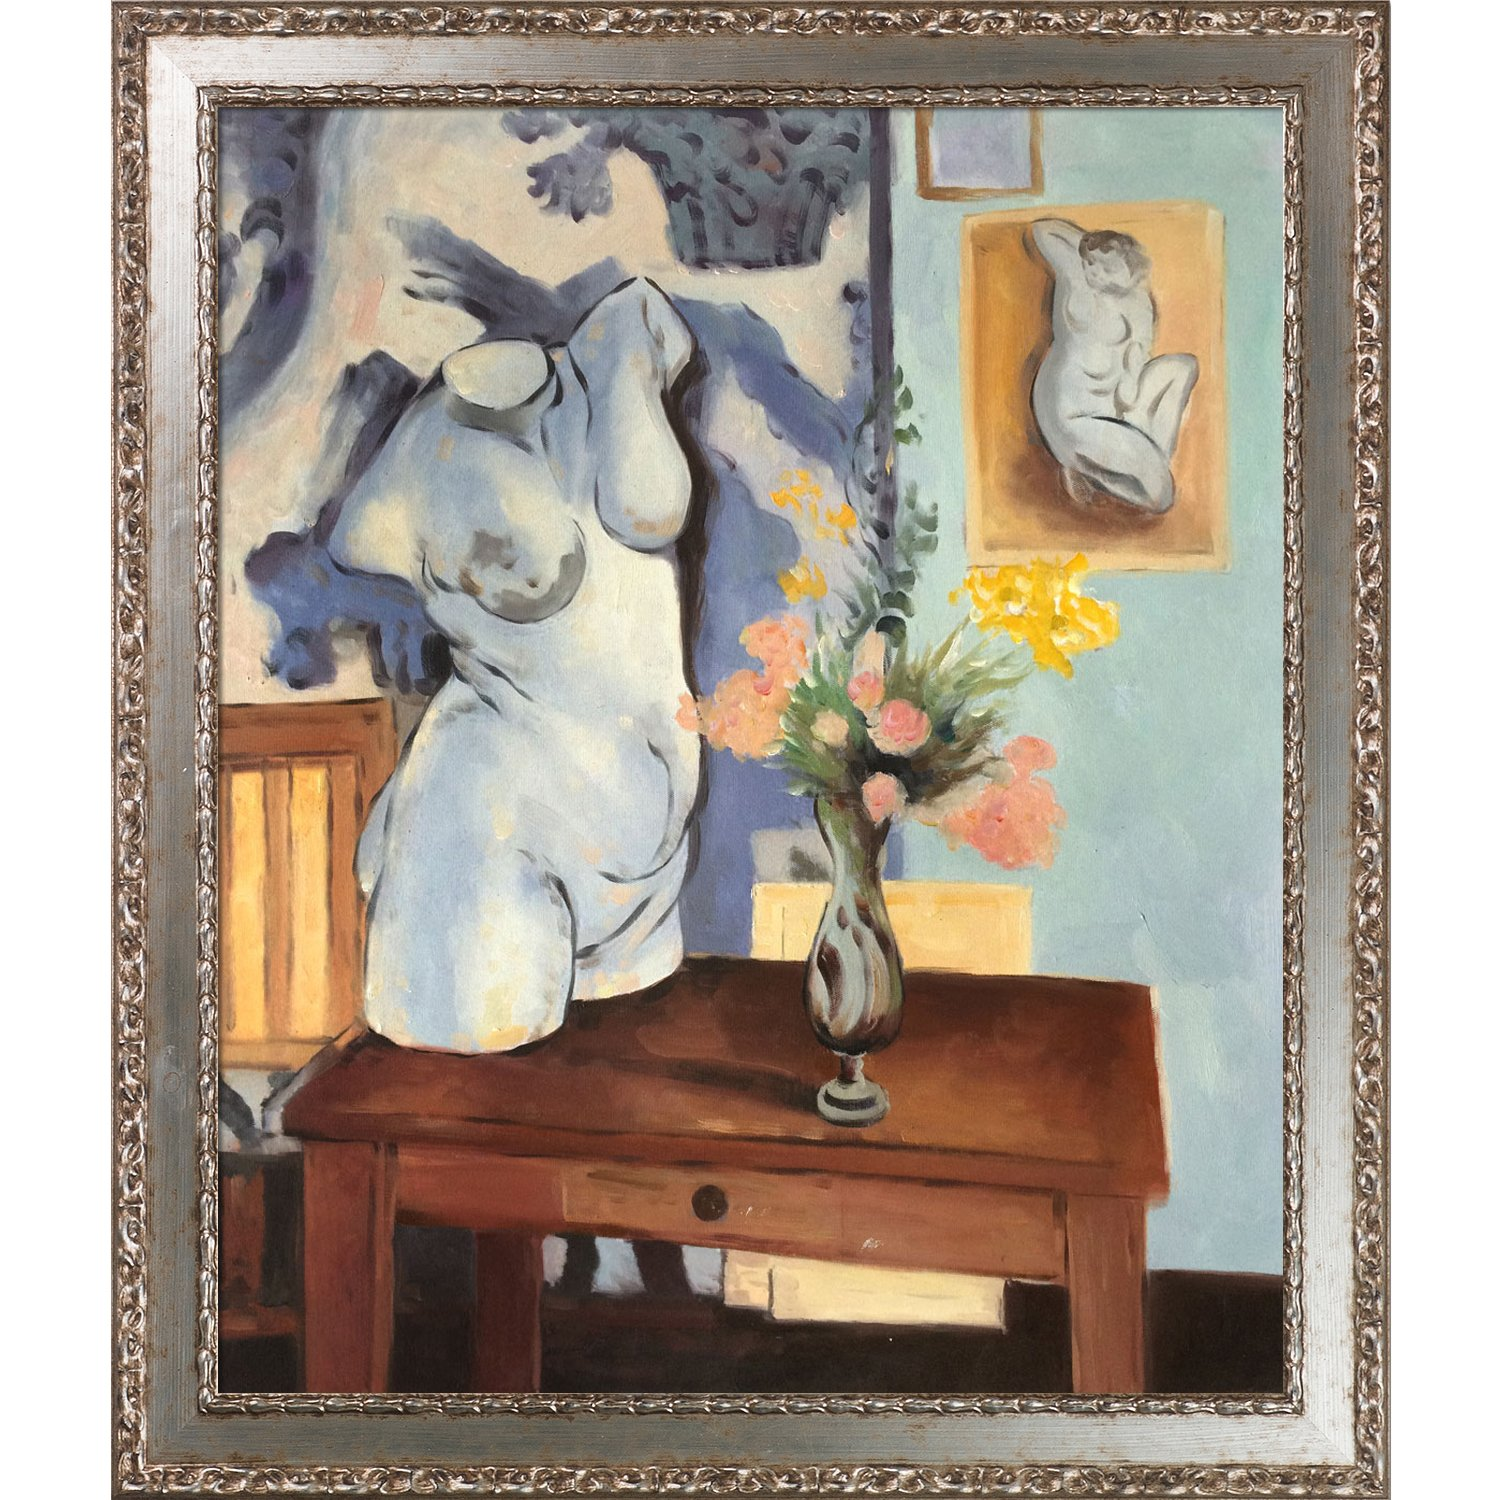 overstockArt Hand Painted Oil on Canvas Greek Torso with Flowers by Henri Matisse Framed MT3282-FR-51322520X24